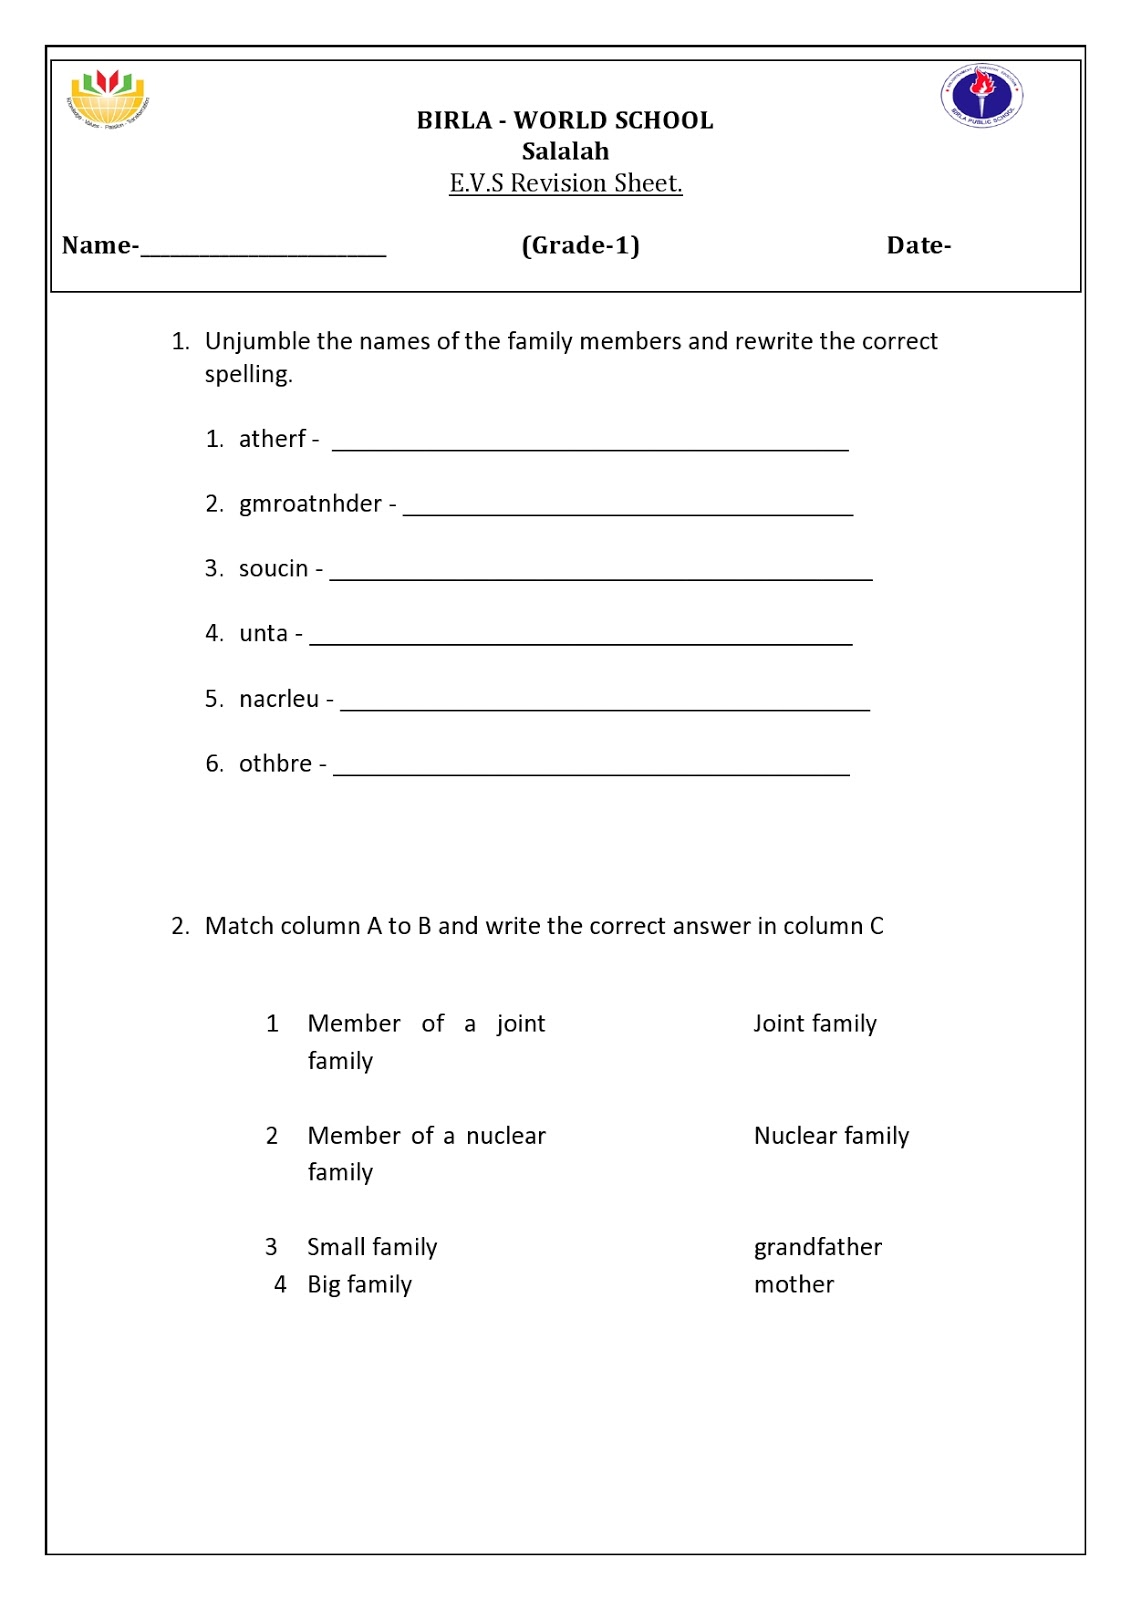 Worksheet Homework For Grade 1 birla world school oman homework for grade 1 b and d on 180816 180816